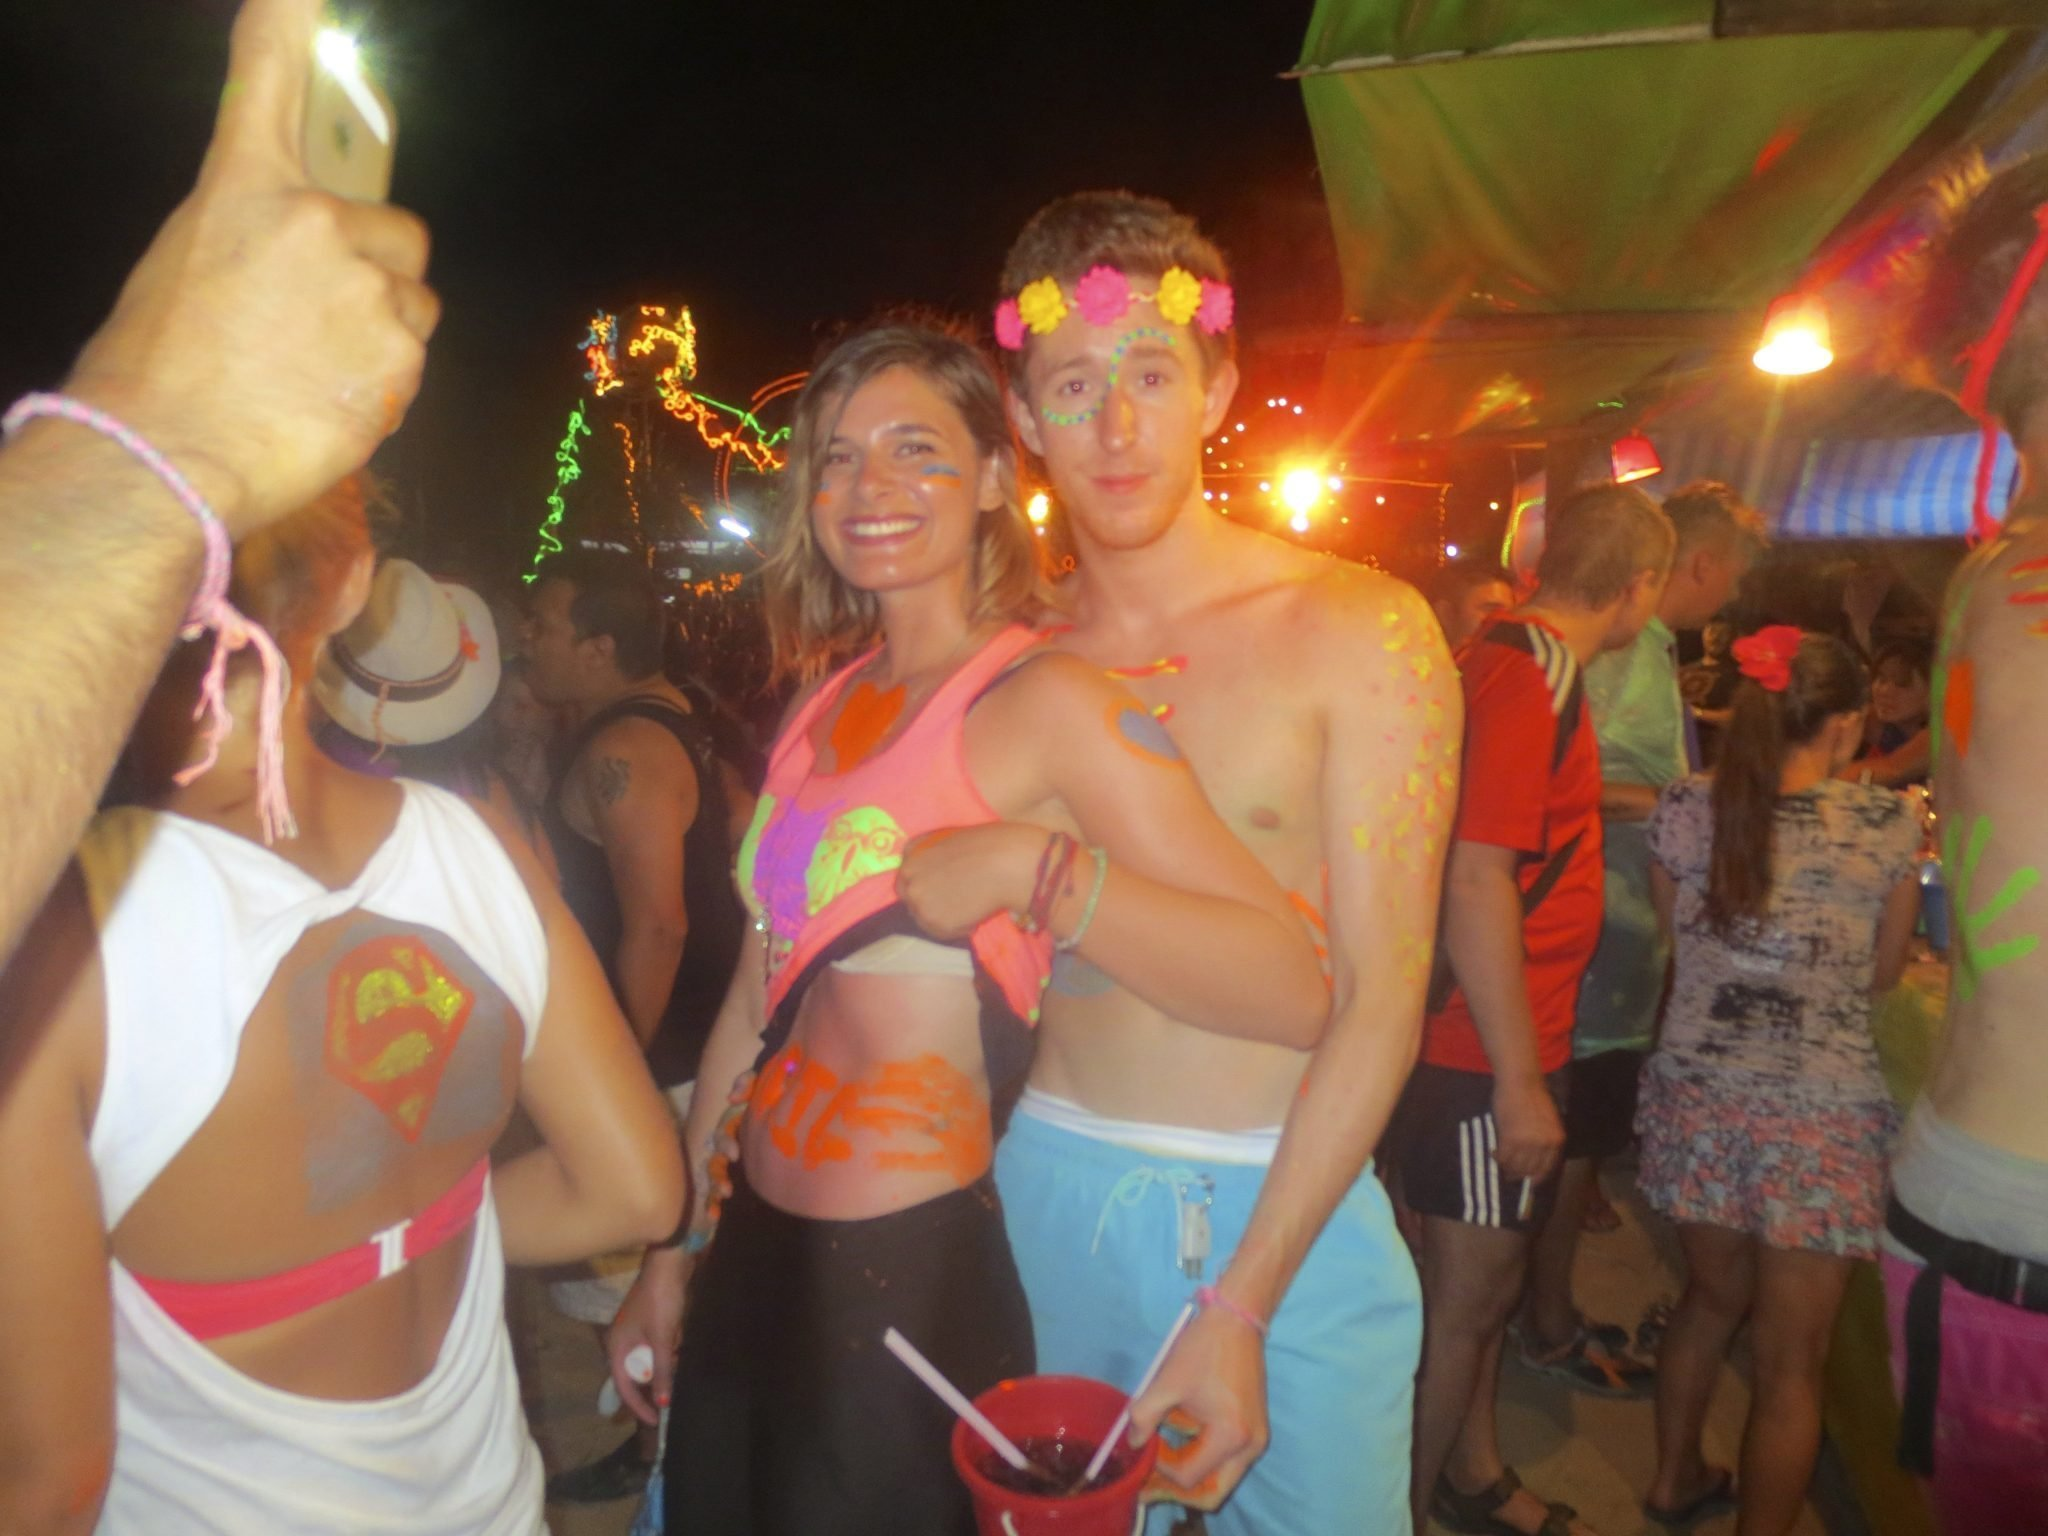 We are infinite: living it up at the Full Moon Party - The ...